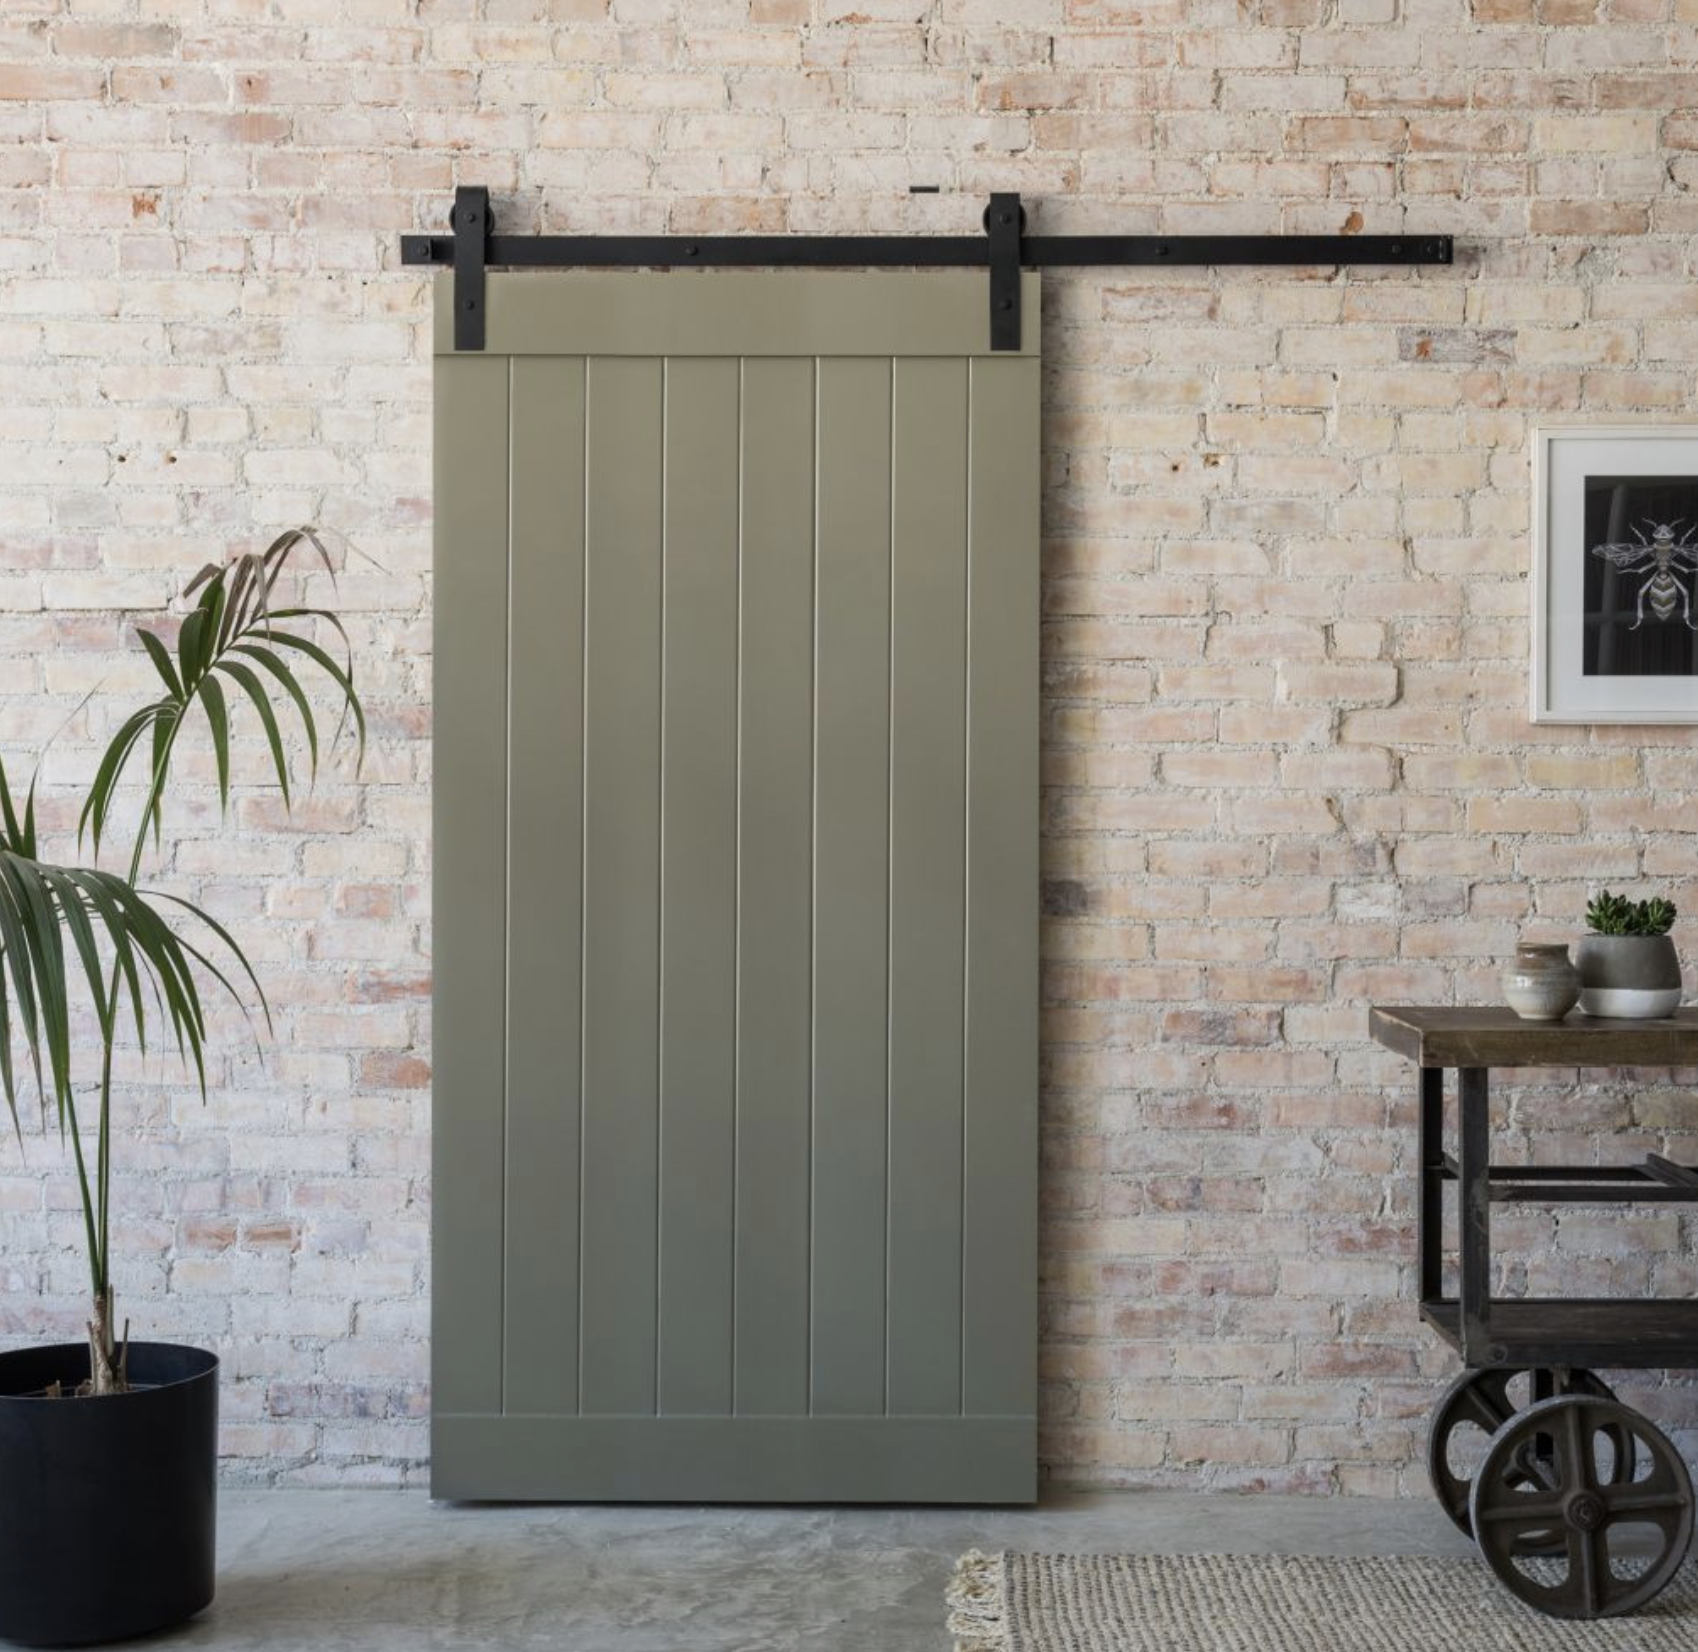 Sliding barn door kit by Sawyers of England